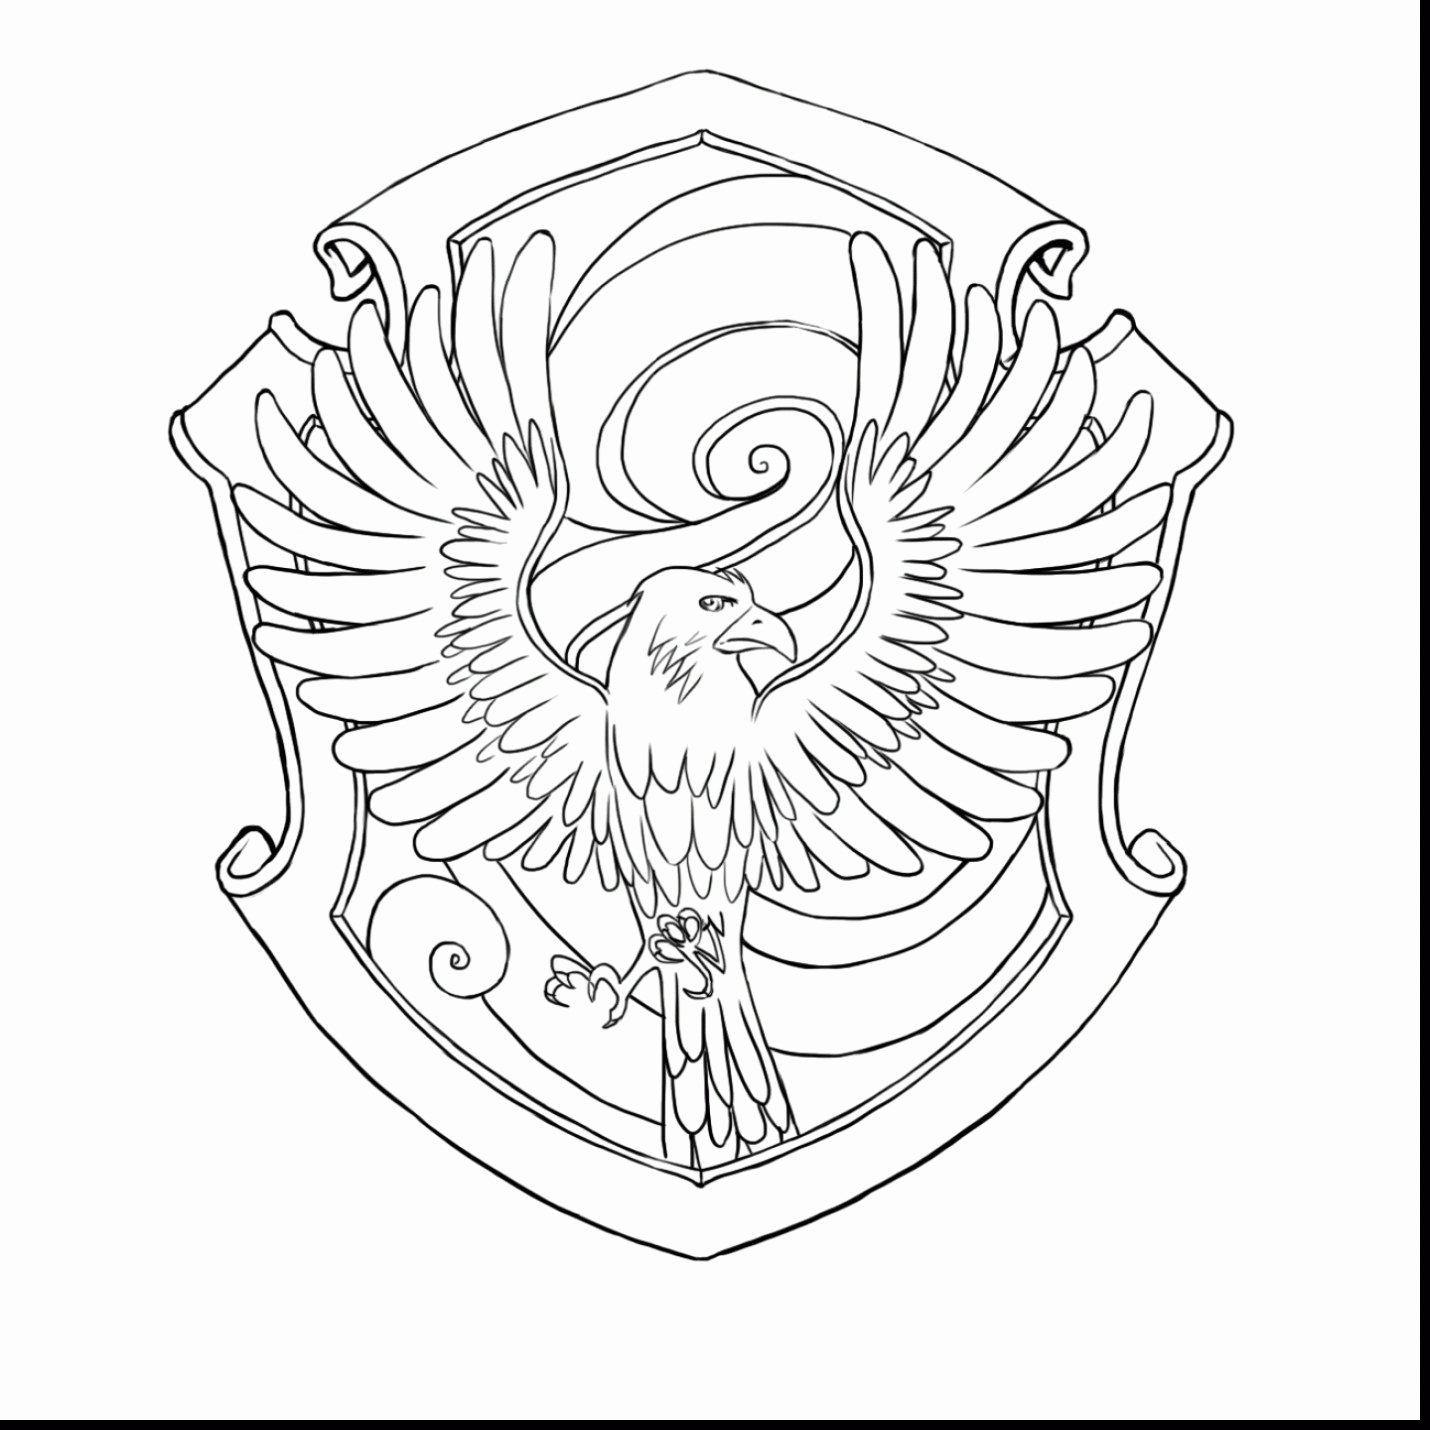 Harry Potter Coloring Pages Harry Potter Coloring Pages New Attractive Phoenix Coloring Pages